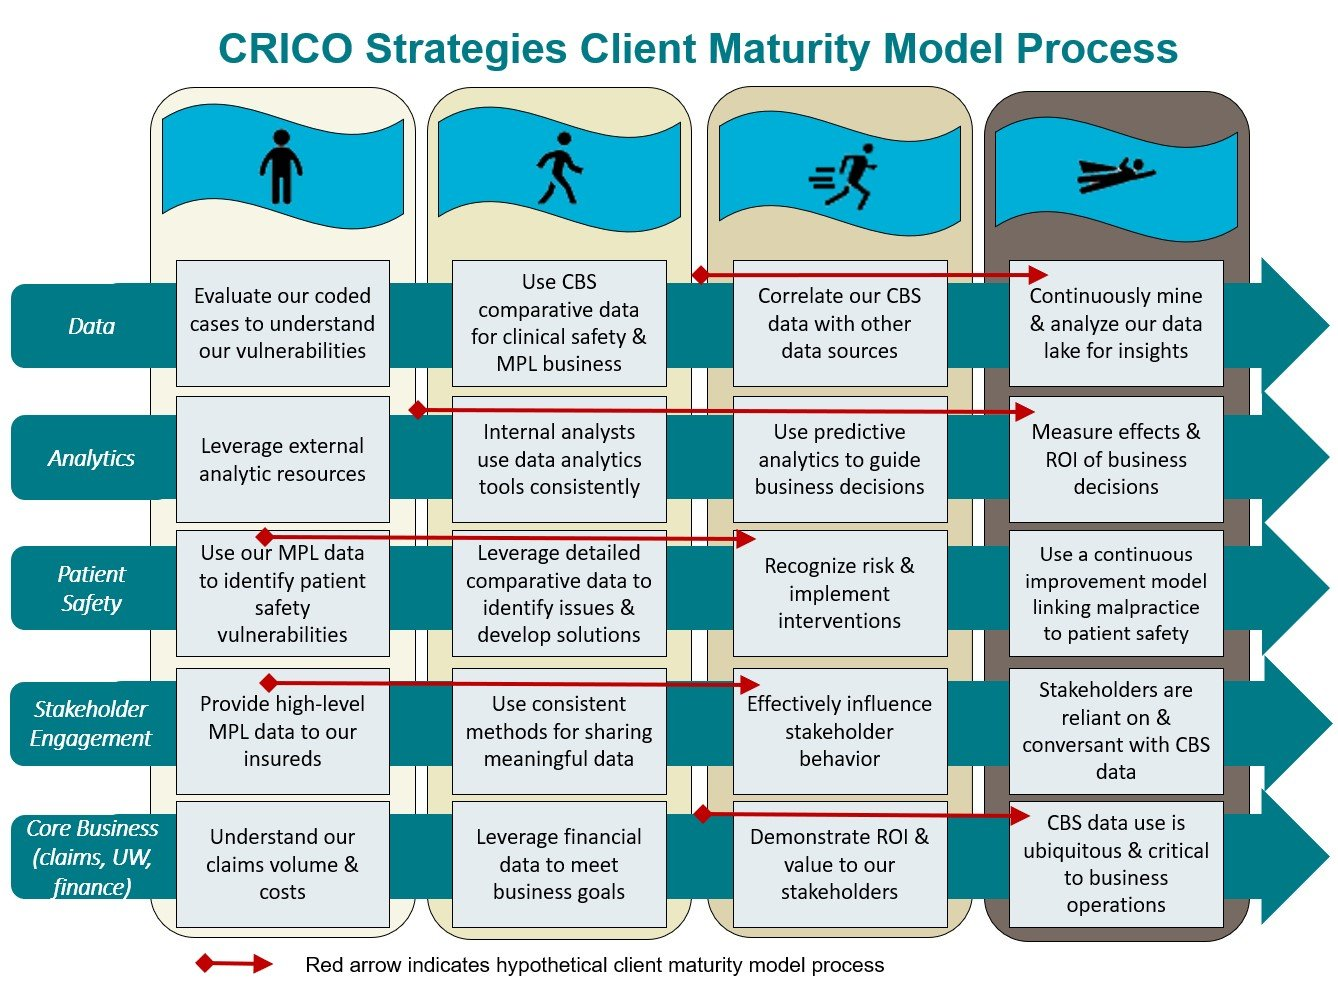 Image of the CRICO Strategies Client Maturity Model Process with columns representing Stand, Walk, Run, Fly, and rows representing Data, Analytics, Patient Safety, Stakeholder Engagement, and Core Business